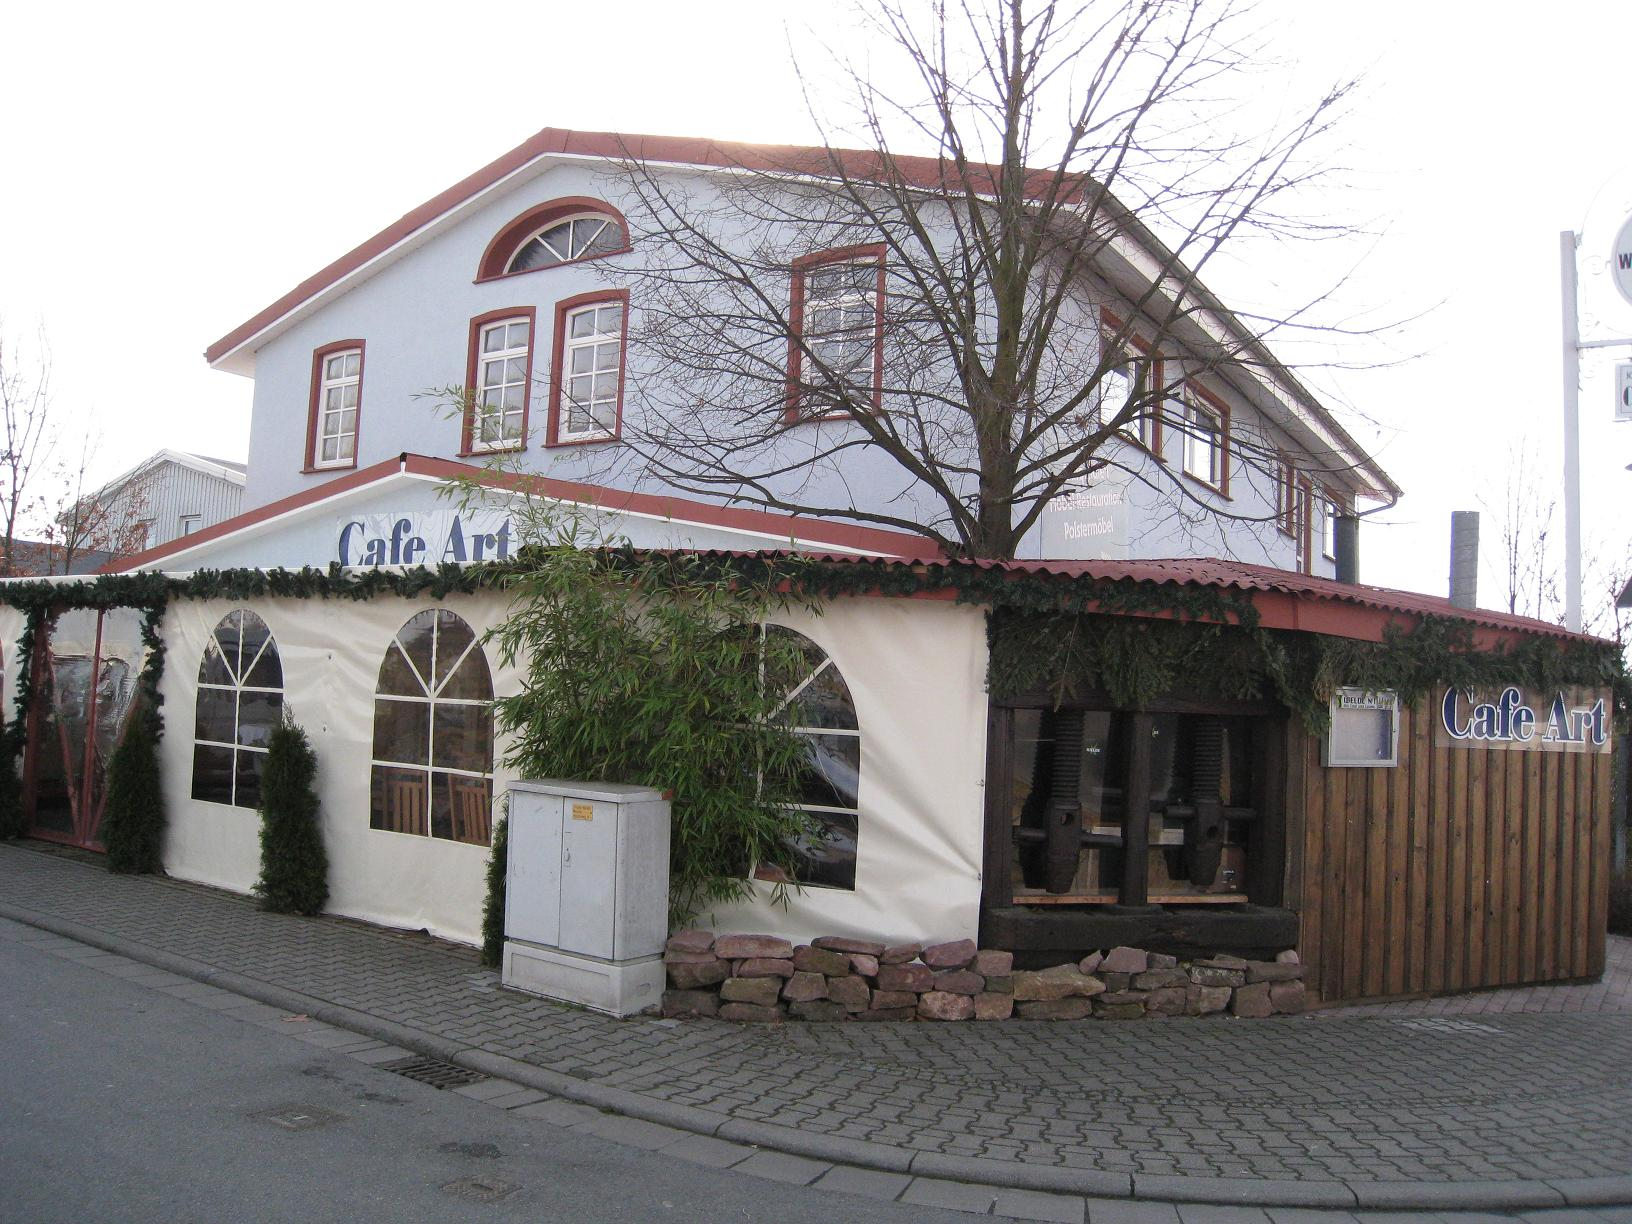 Café Art in Walldorf